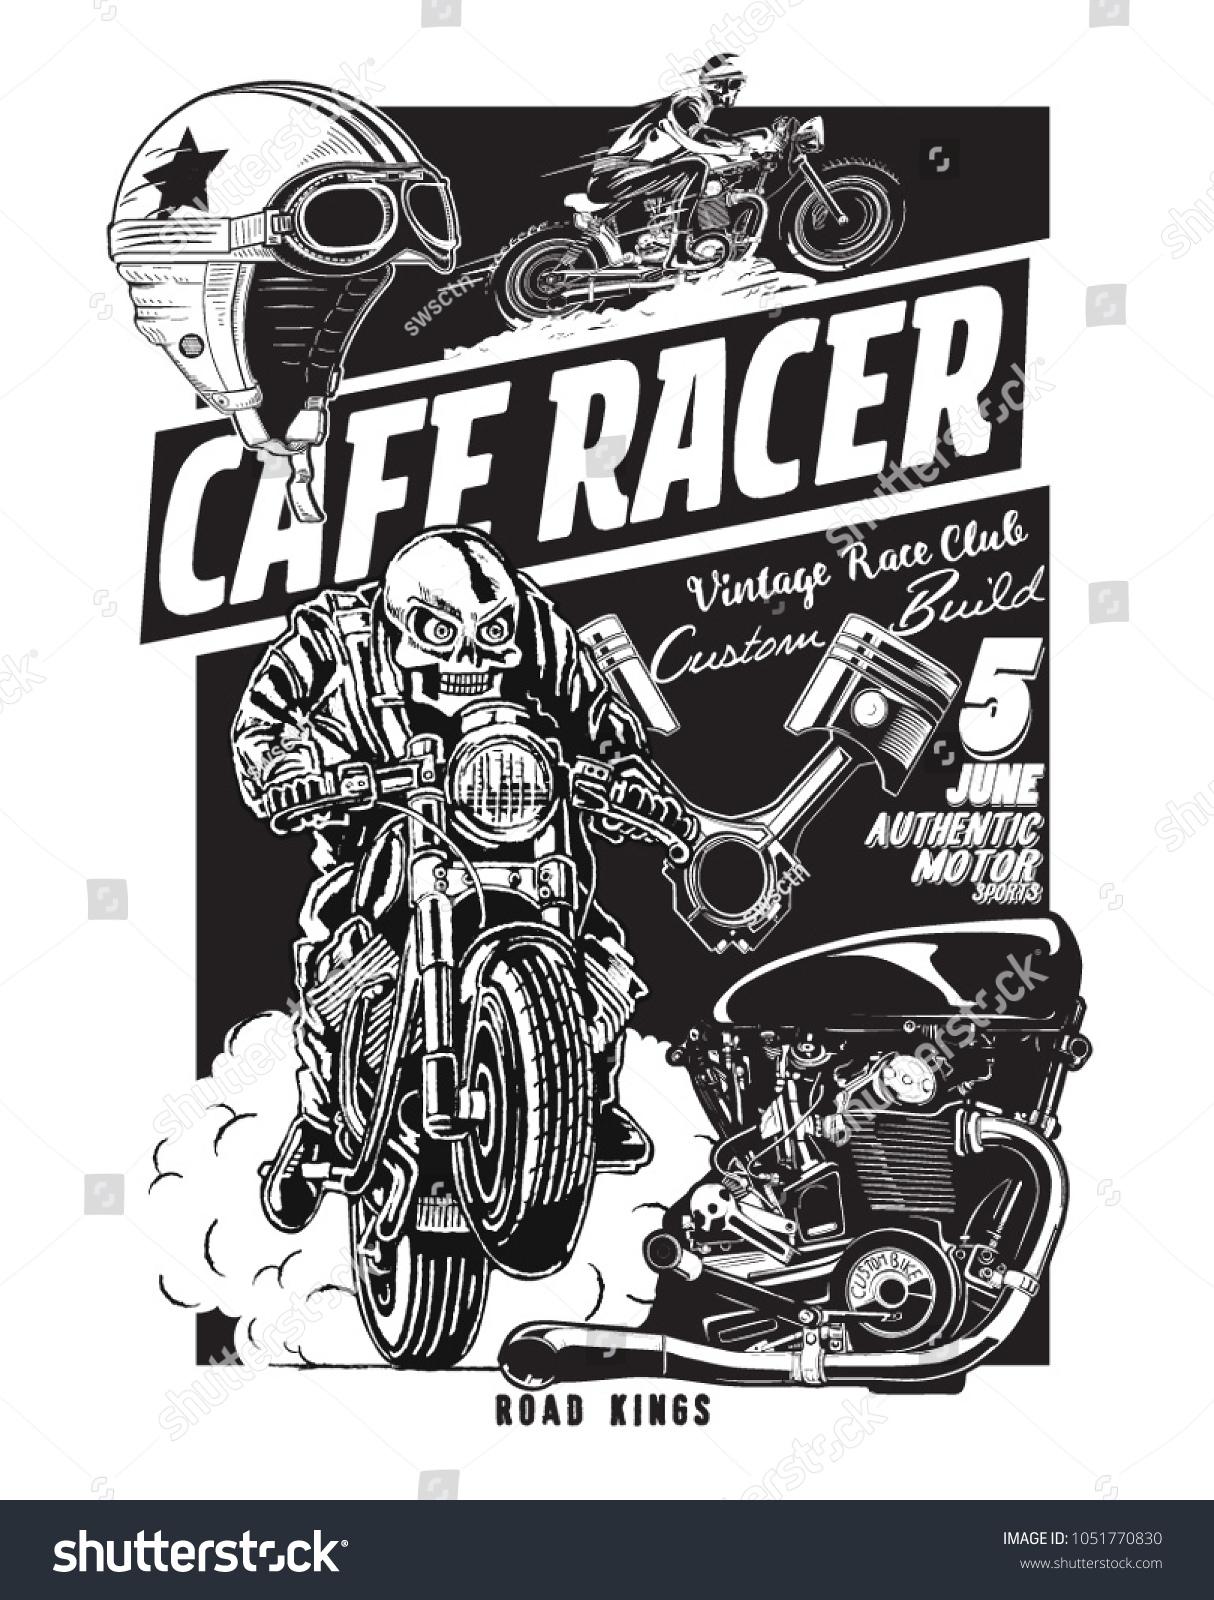 Vector Skeleton Rider Cafe Racer Motorcycle Stock Vector Royalty Free 1051770830